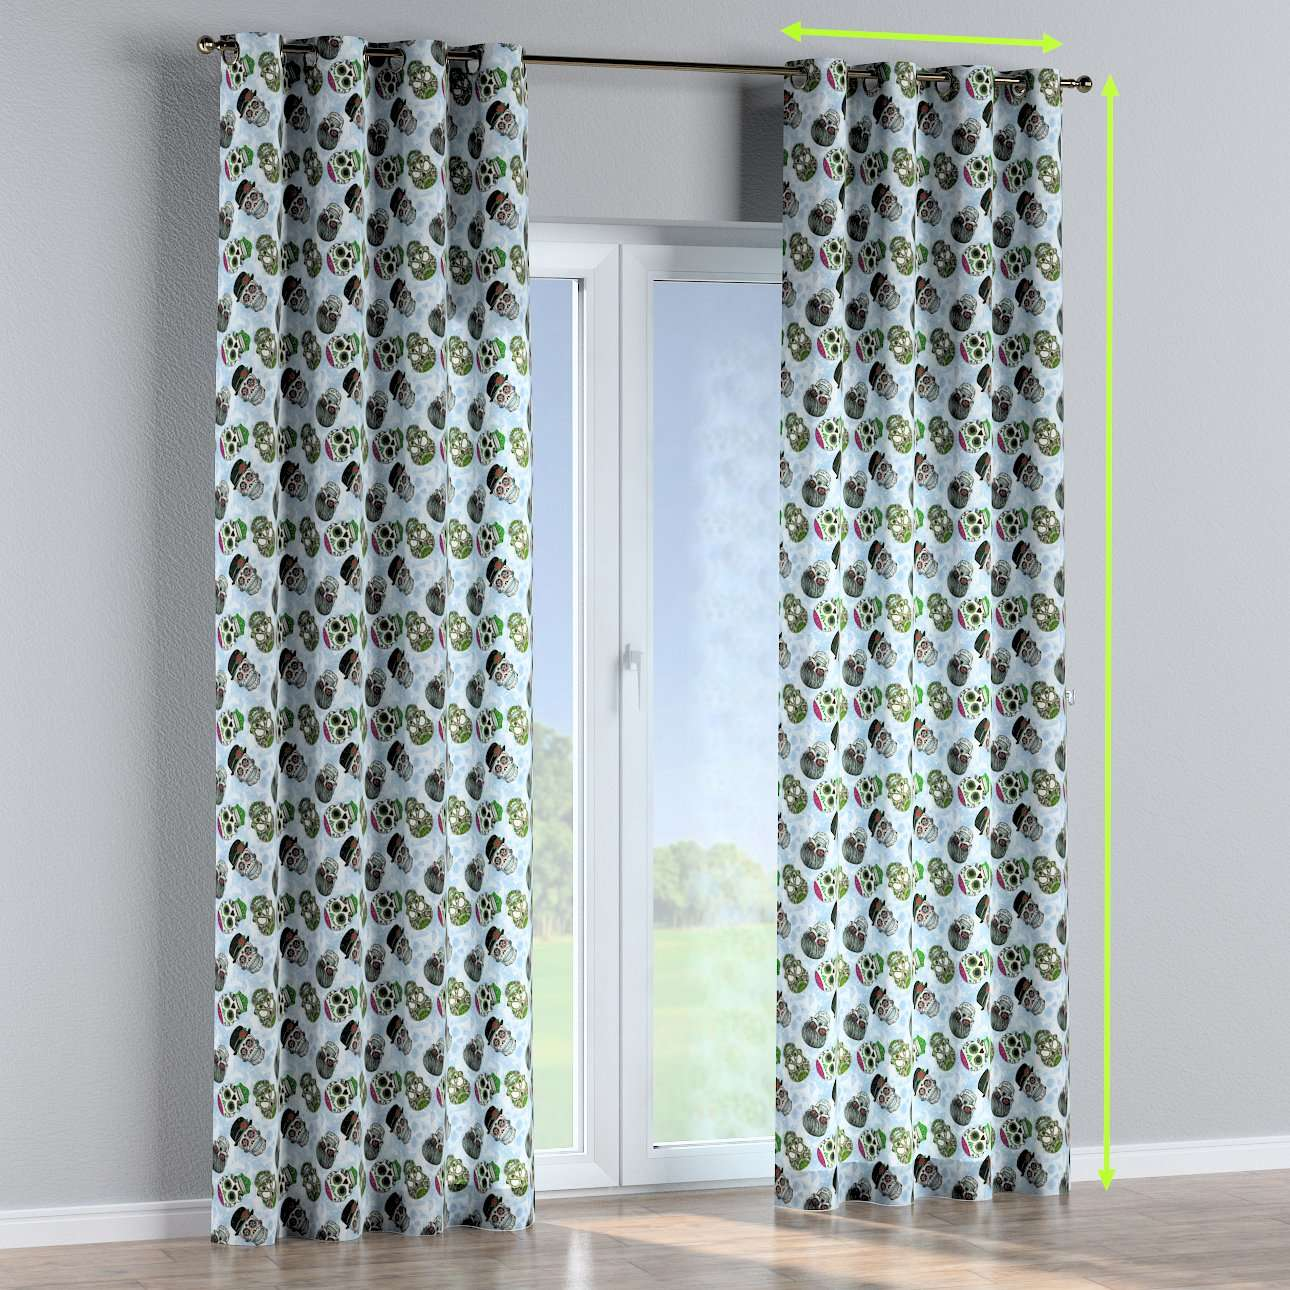 Eyelet lined curtains in collection Freestyle, fabric: 141-01